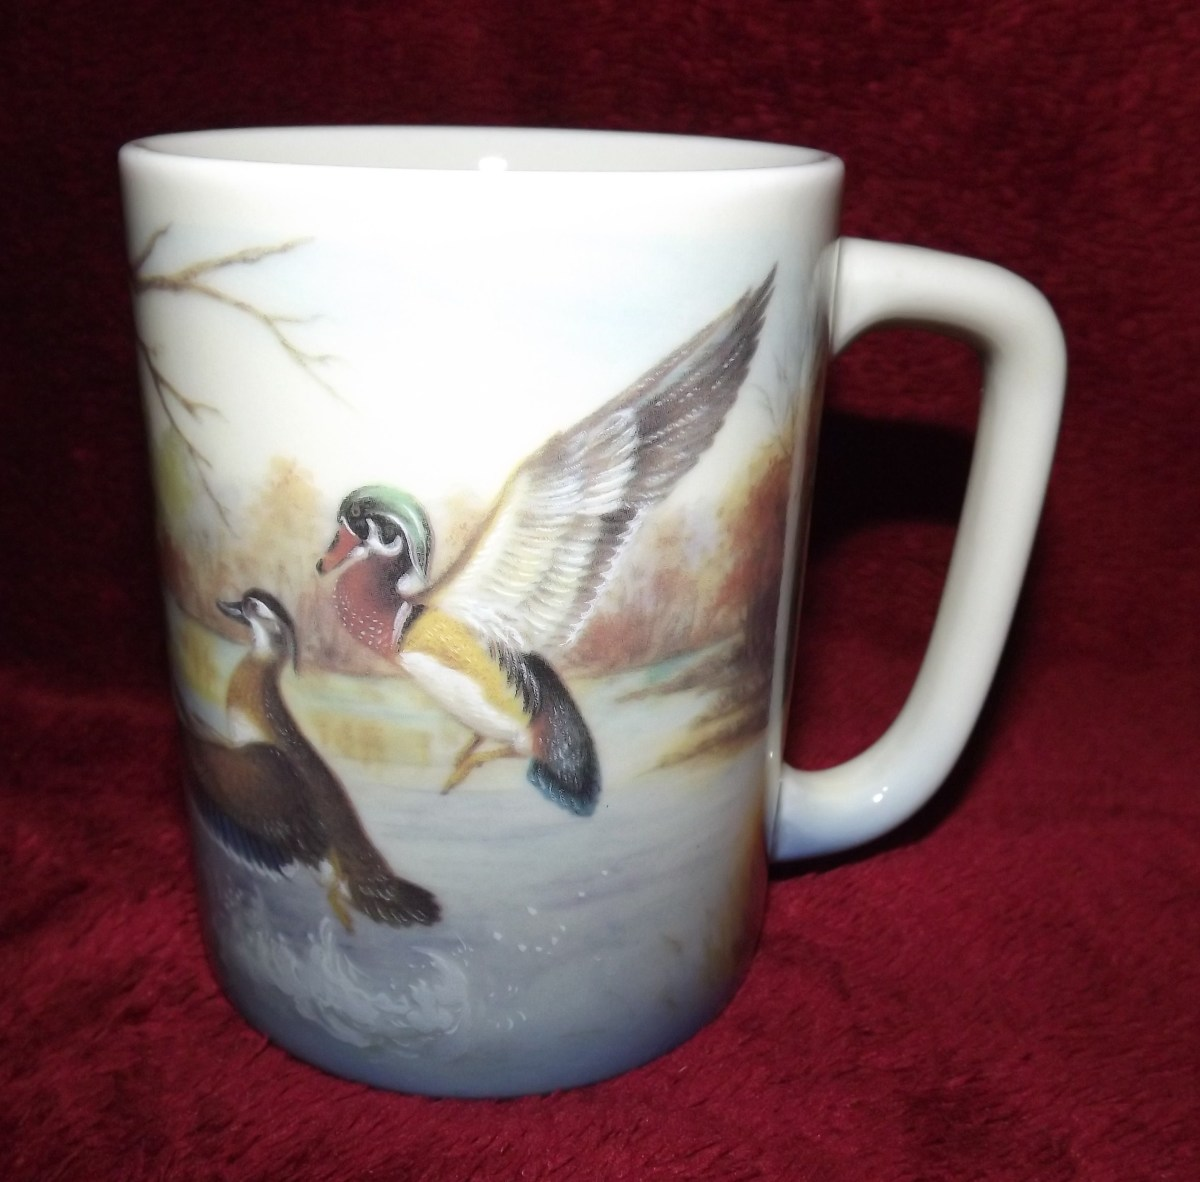 An Otagiri Mug (Judy Matthews Wood Ducks Design) That Sold for $9.99